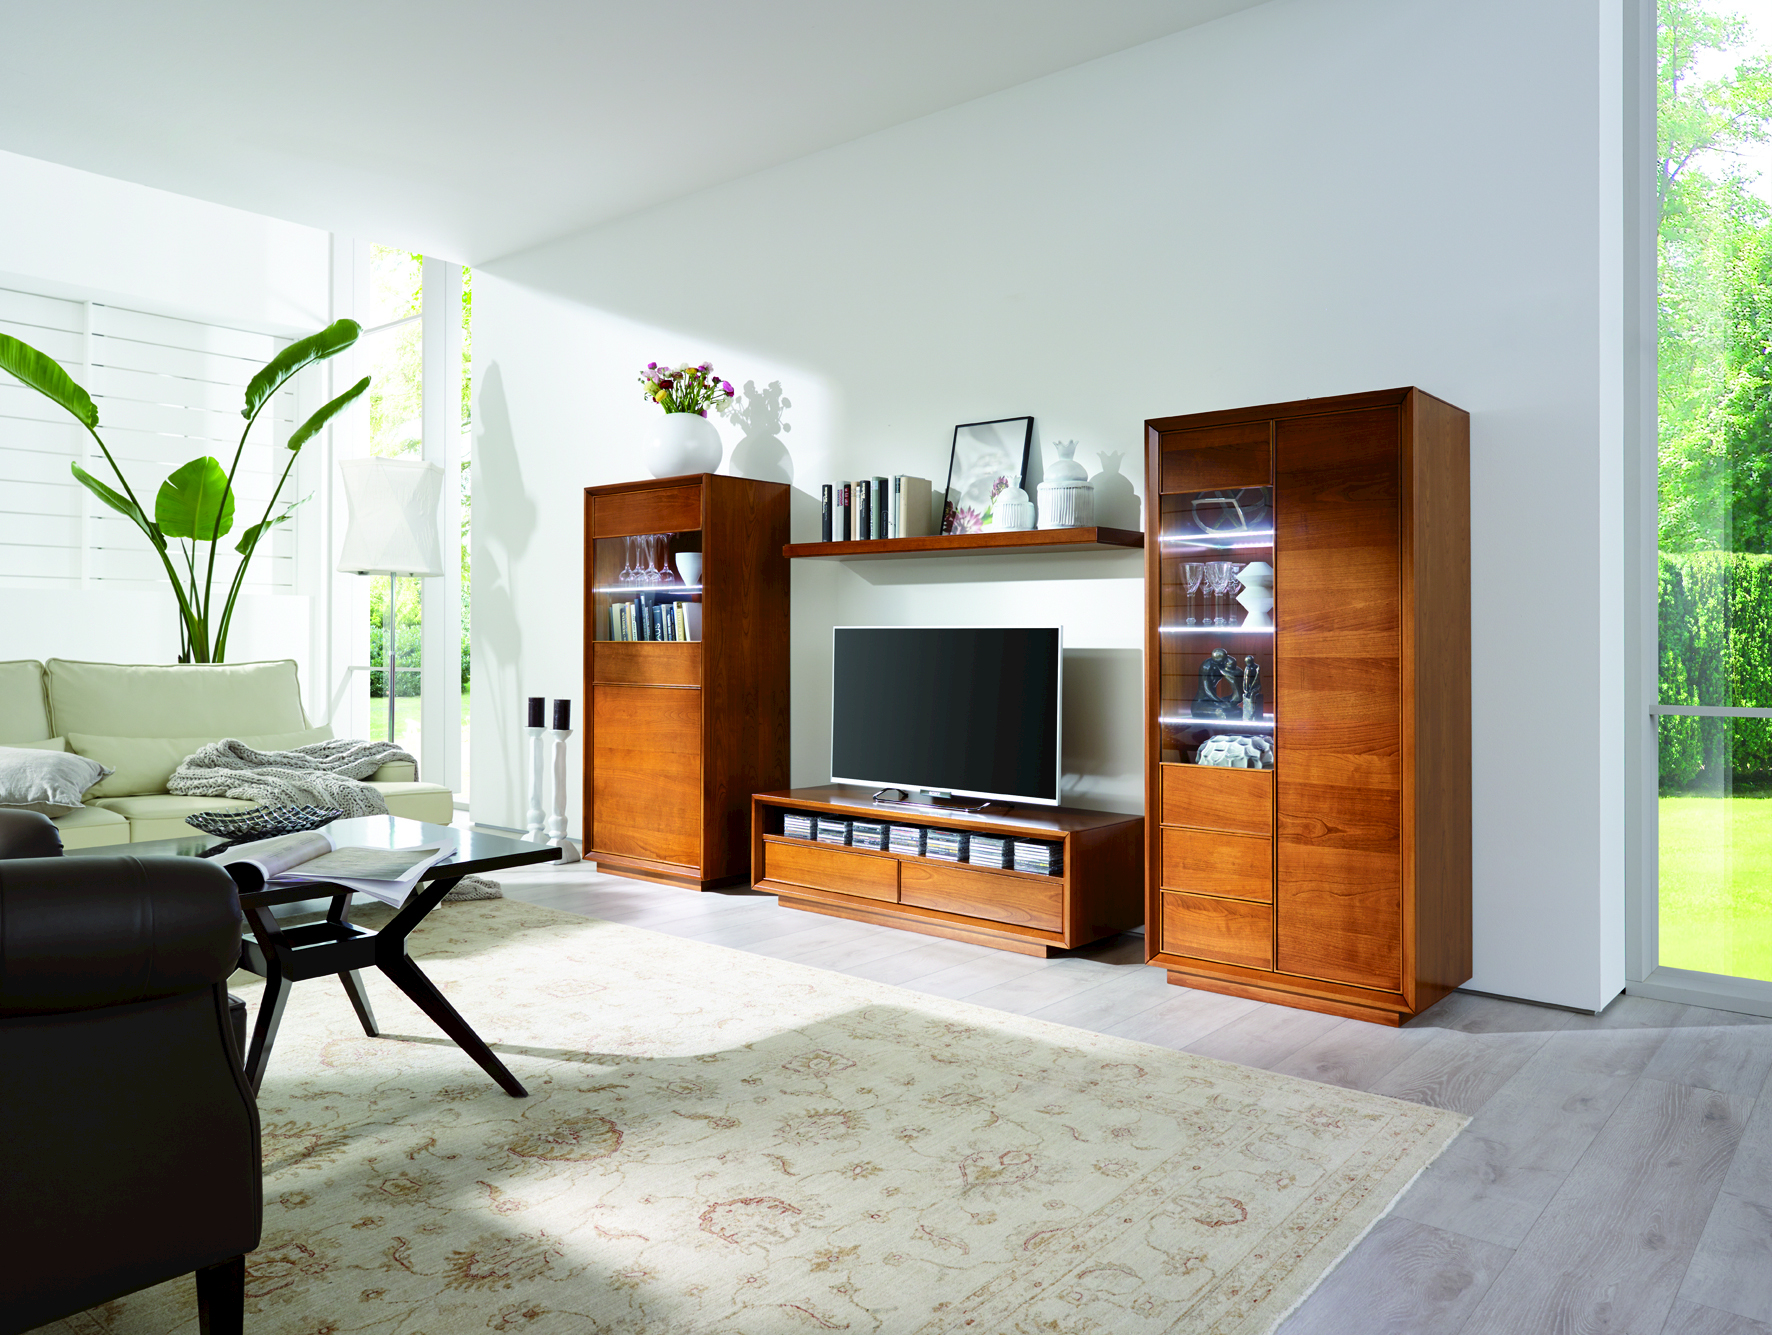 grace tv m bel by selva design tiziano bistaffa. Black Bedroom Furniture Sets. Home Design Ideas